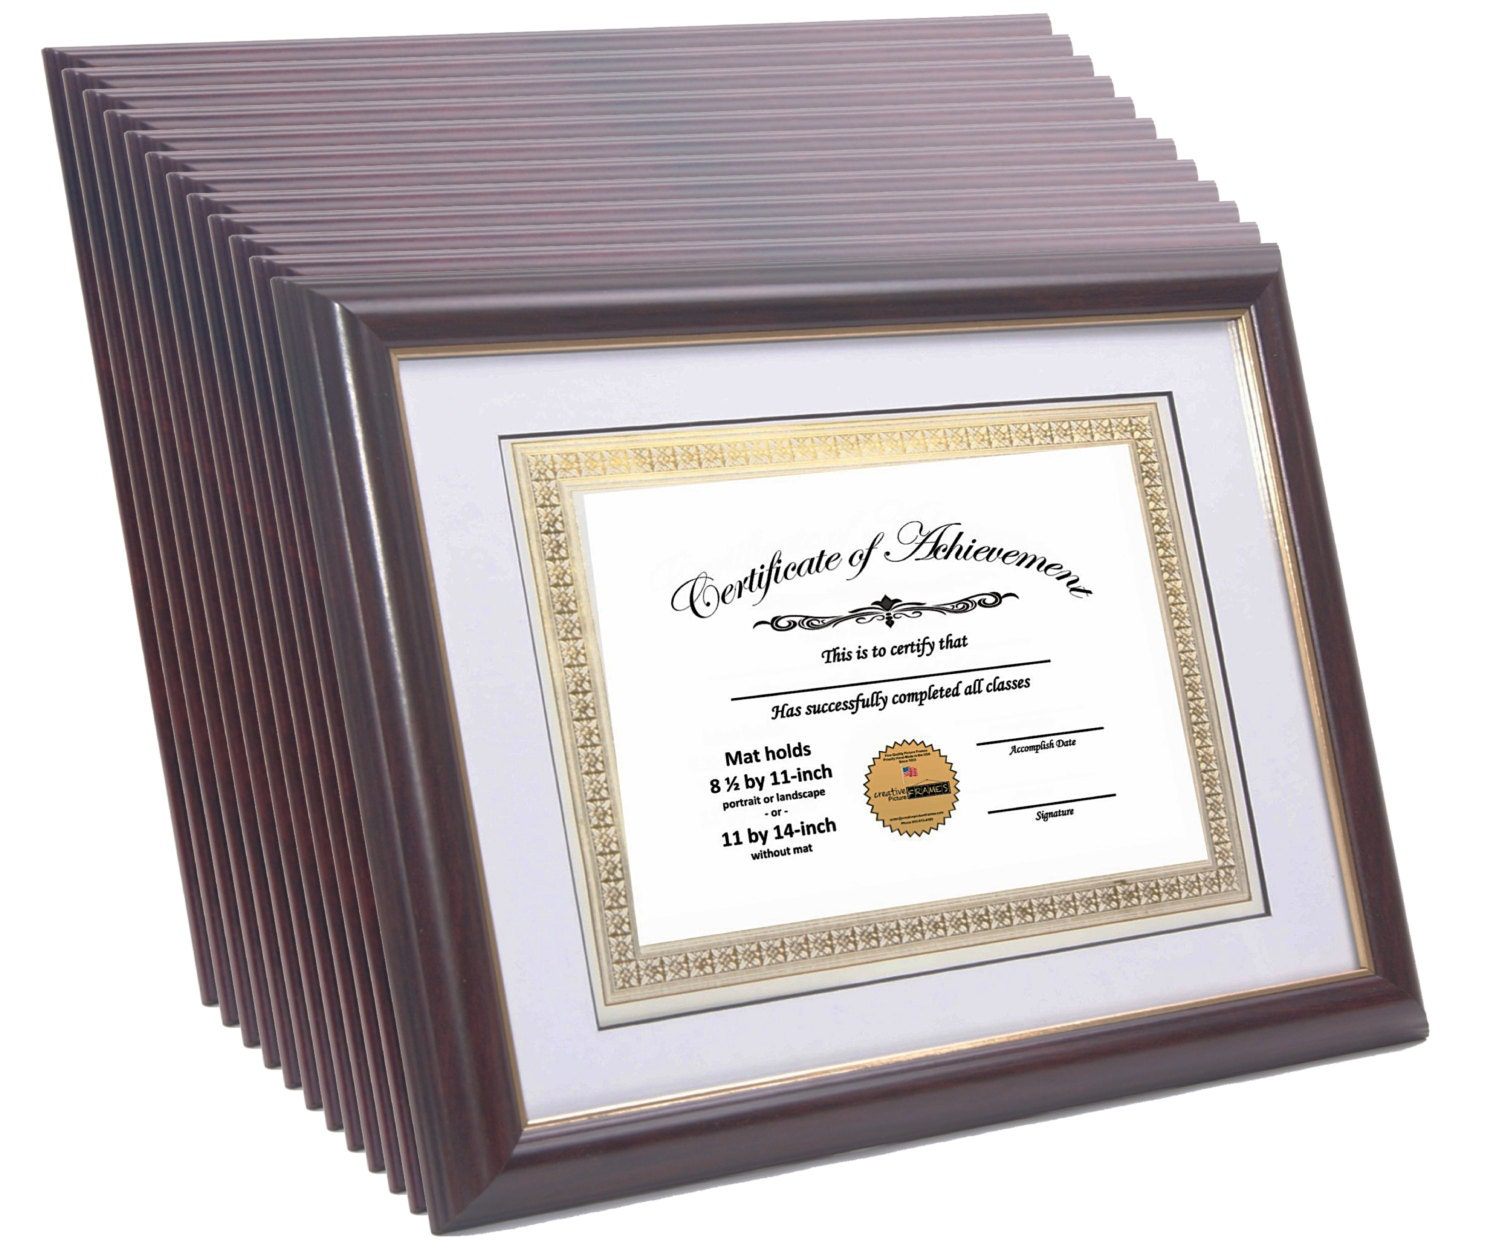 Certiicate Frame Mahogany W Gold Displays 8 5 By 11